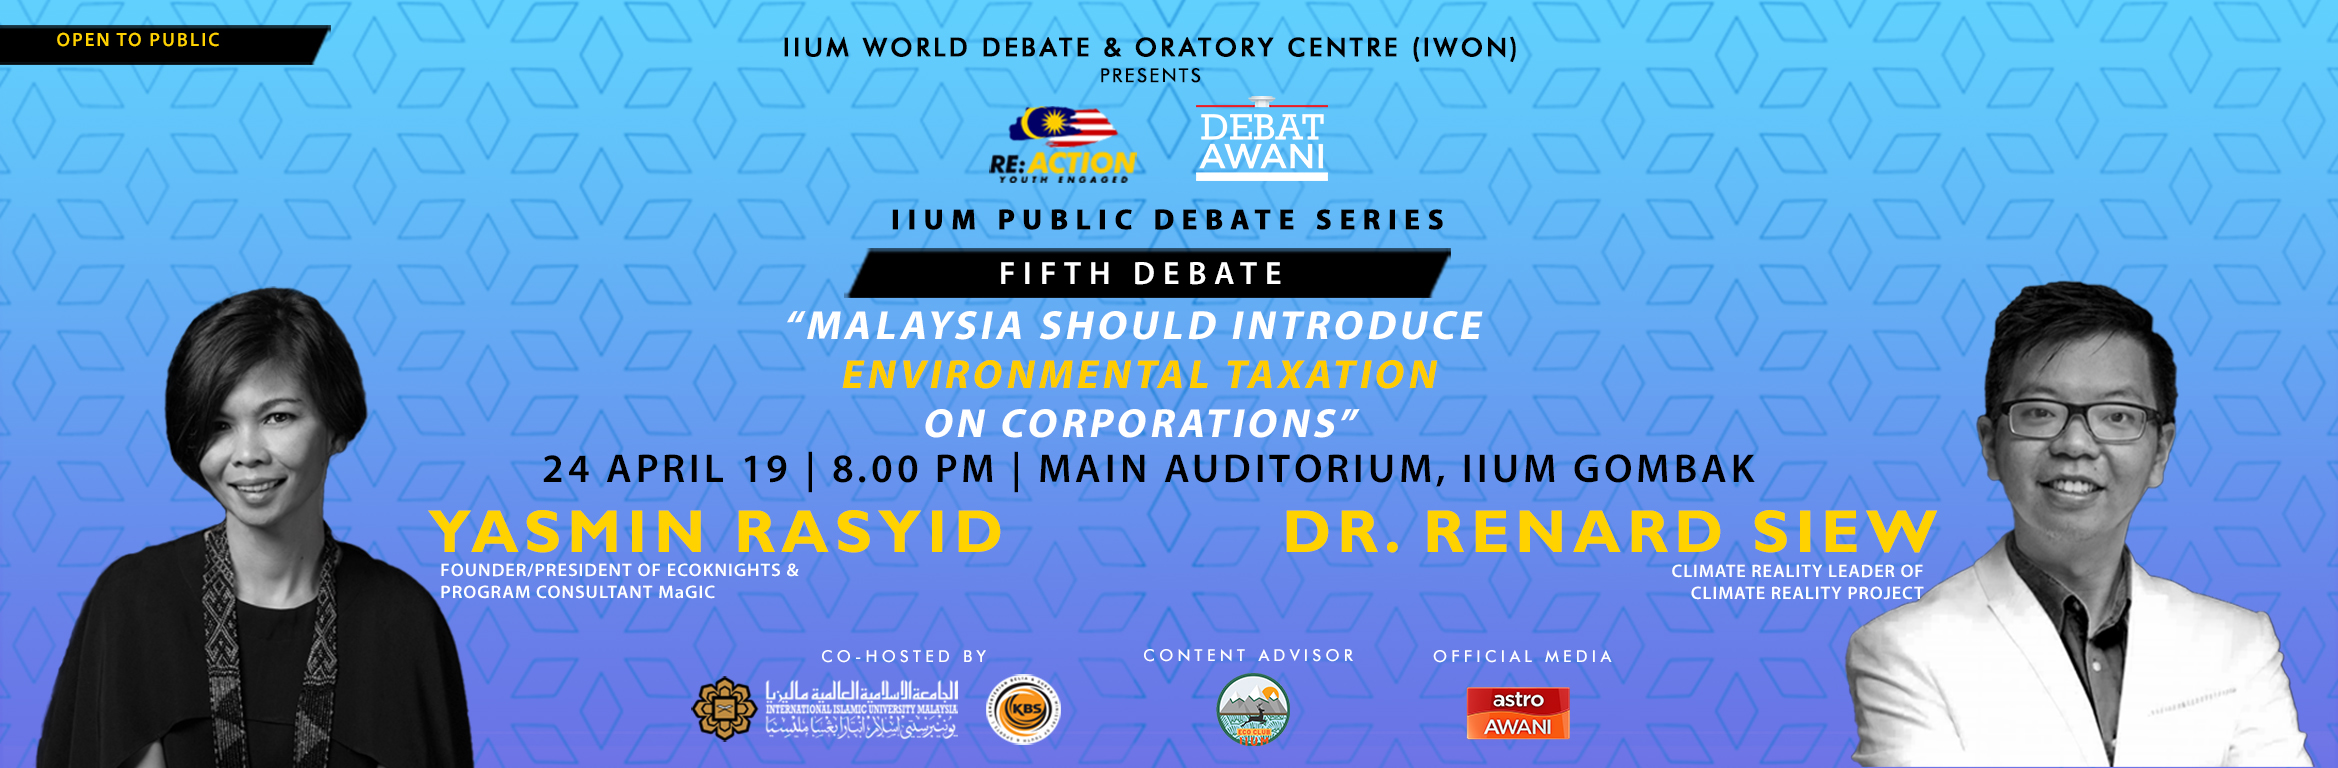 IIUM Public Debate Series #5 : Malaysia Should Introduce Environmental Taxation on Corporations""